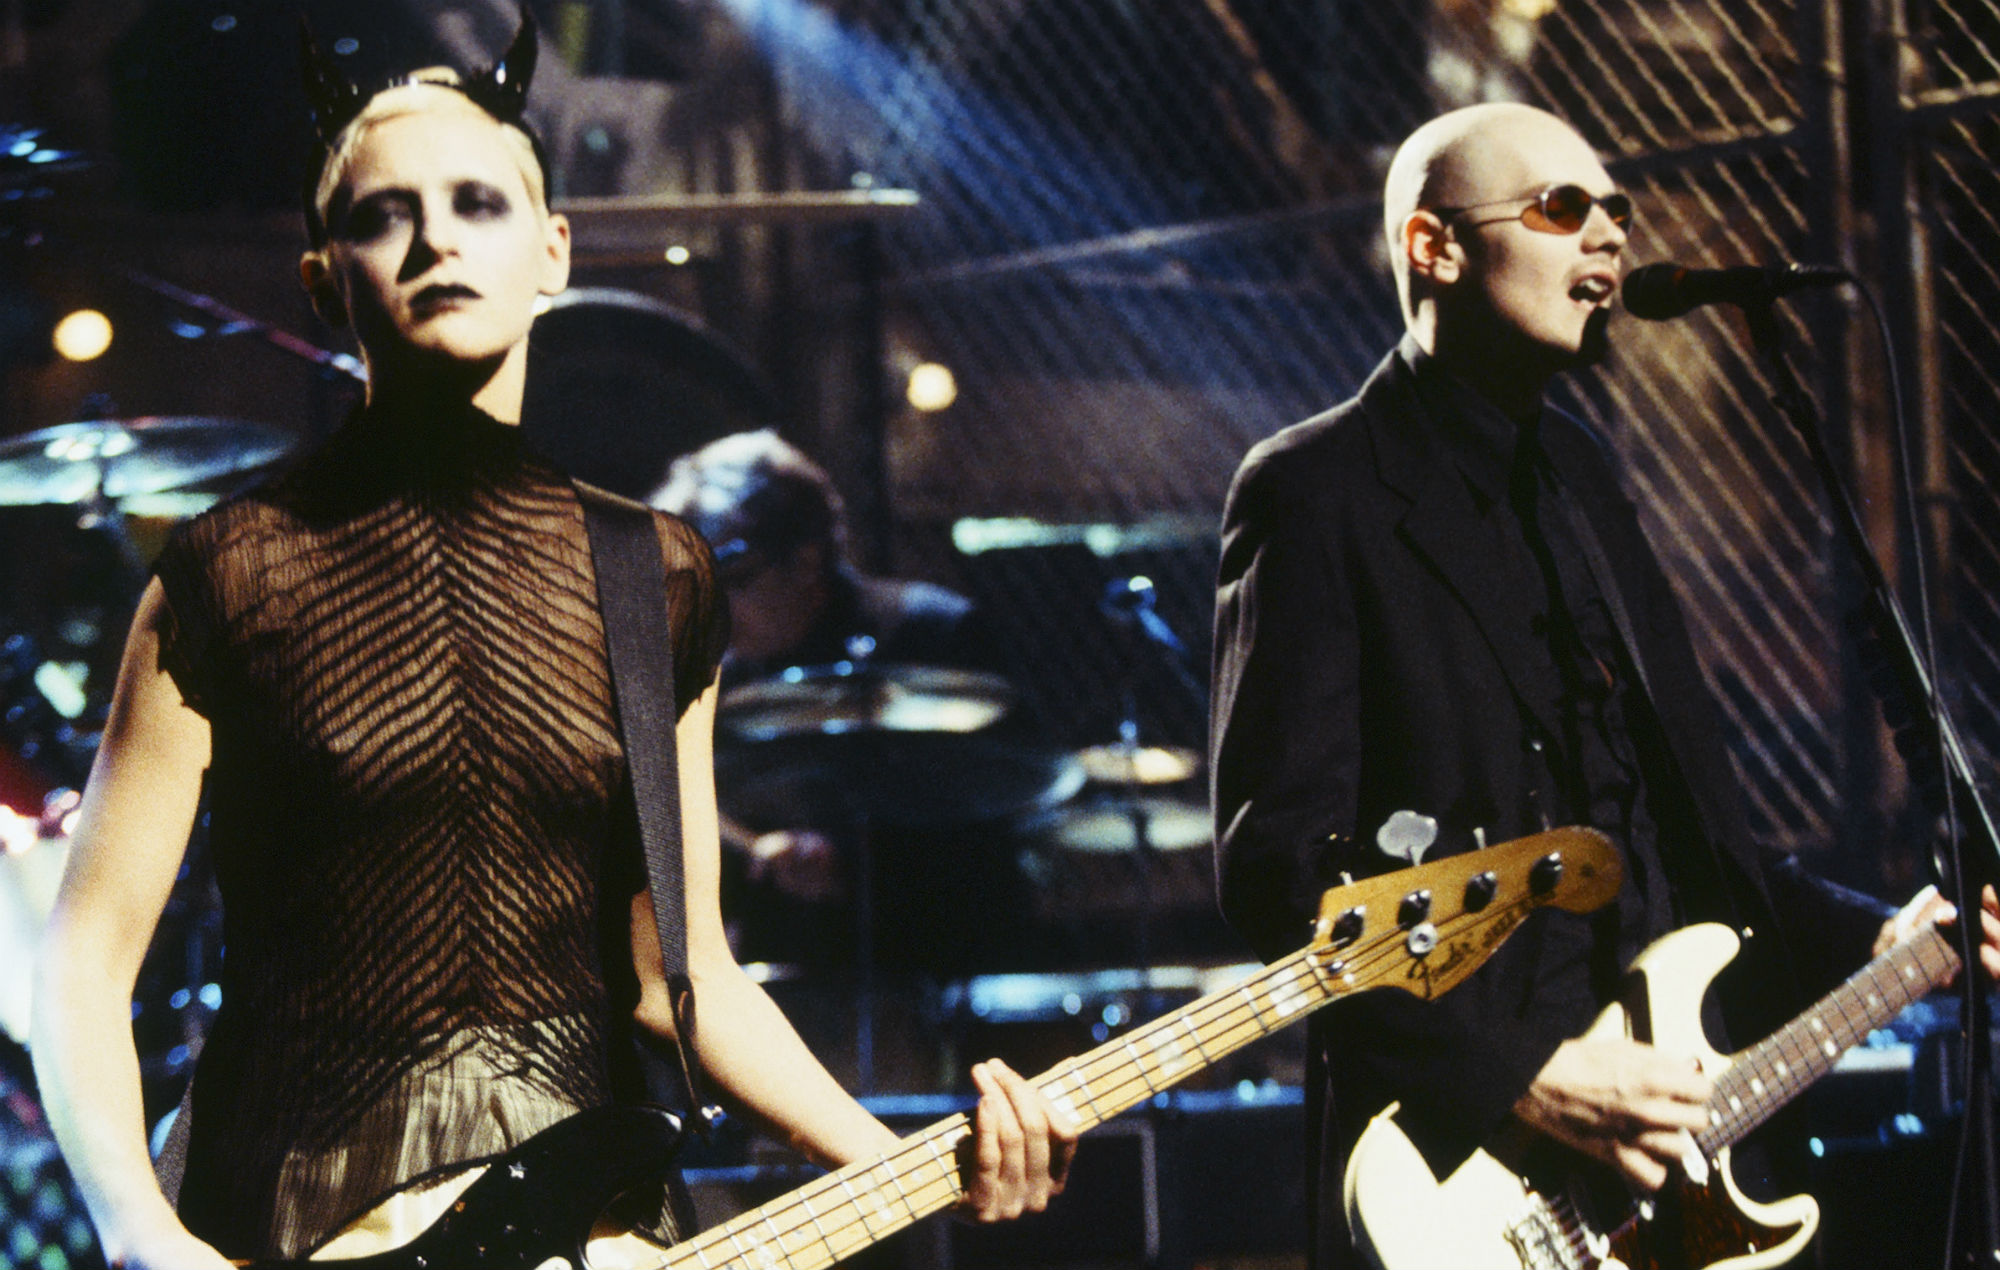 Billy Corgan says D'Arcy Wretzky kept asking to re-join Smashing Pumpkins  after their feud